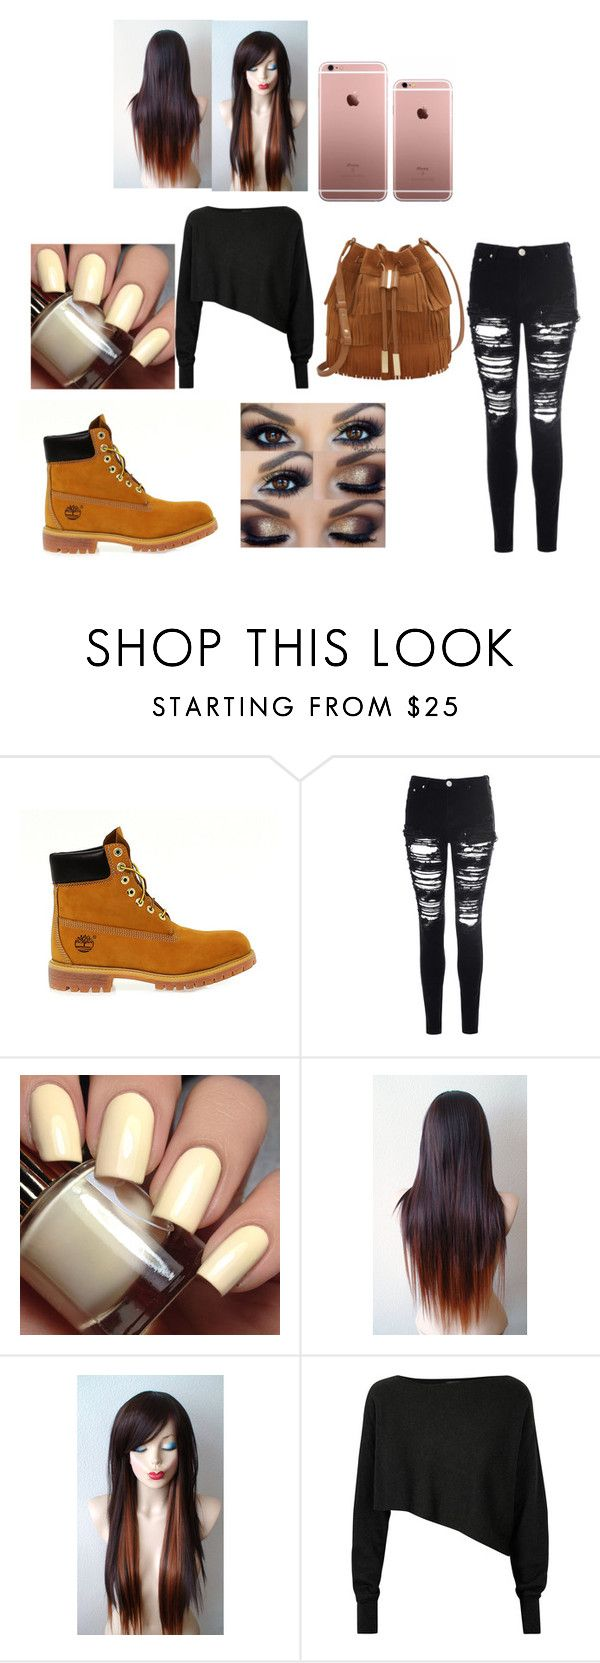 """""""Sans titre #5"""" by lindsay-leblanc on Polyvore featuring mode, Timberland, Glamorous, Crea Concept et Vince Camuto"""